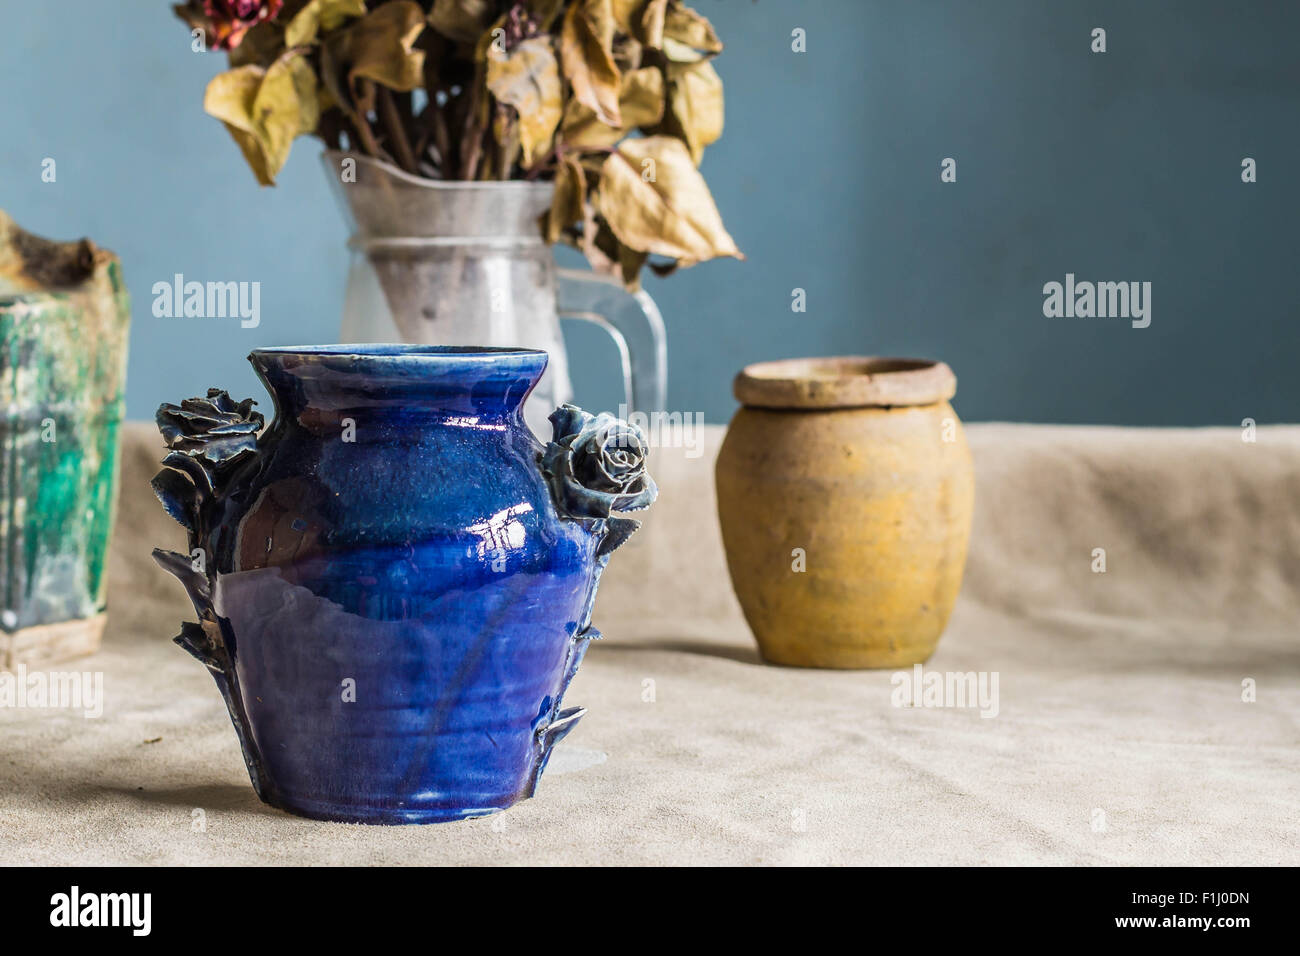 Beautiful blue flower vase on the table stock photo royalty free beautiful blue flower vase on the table reviewsmspy